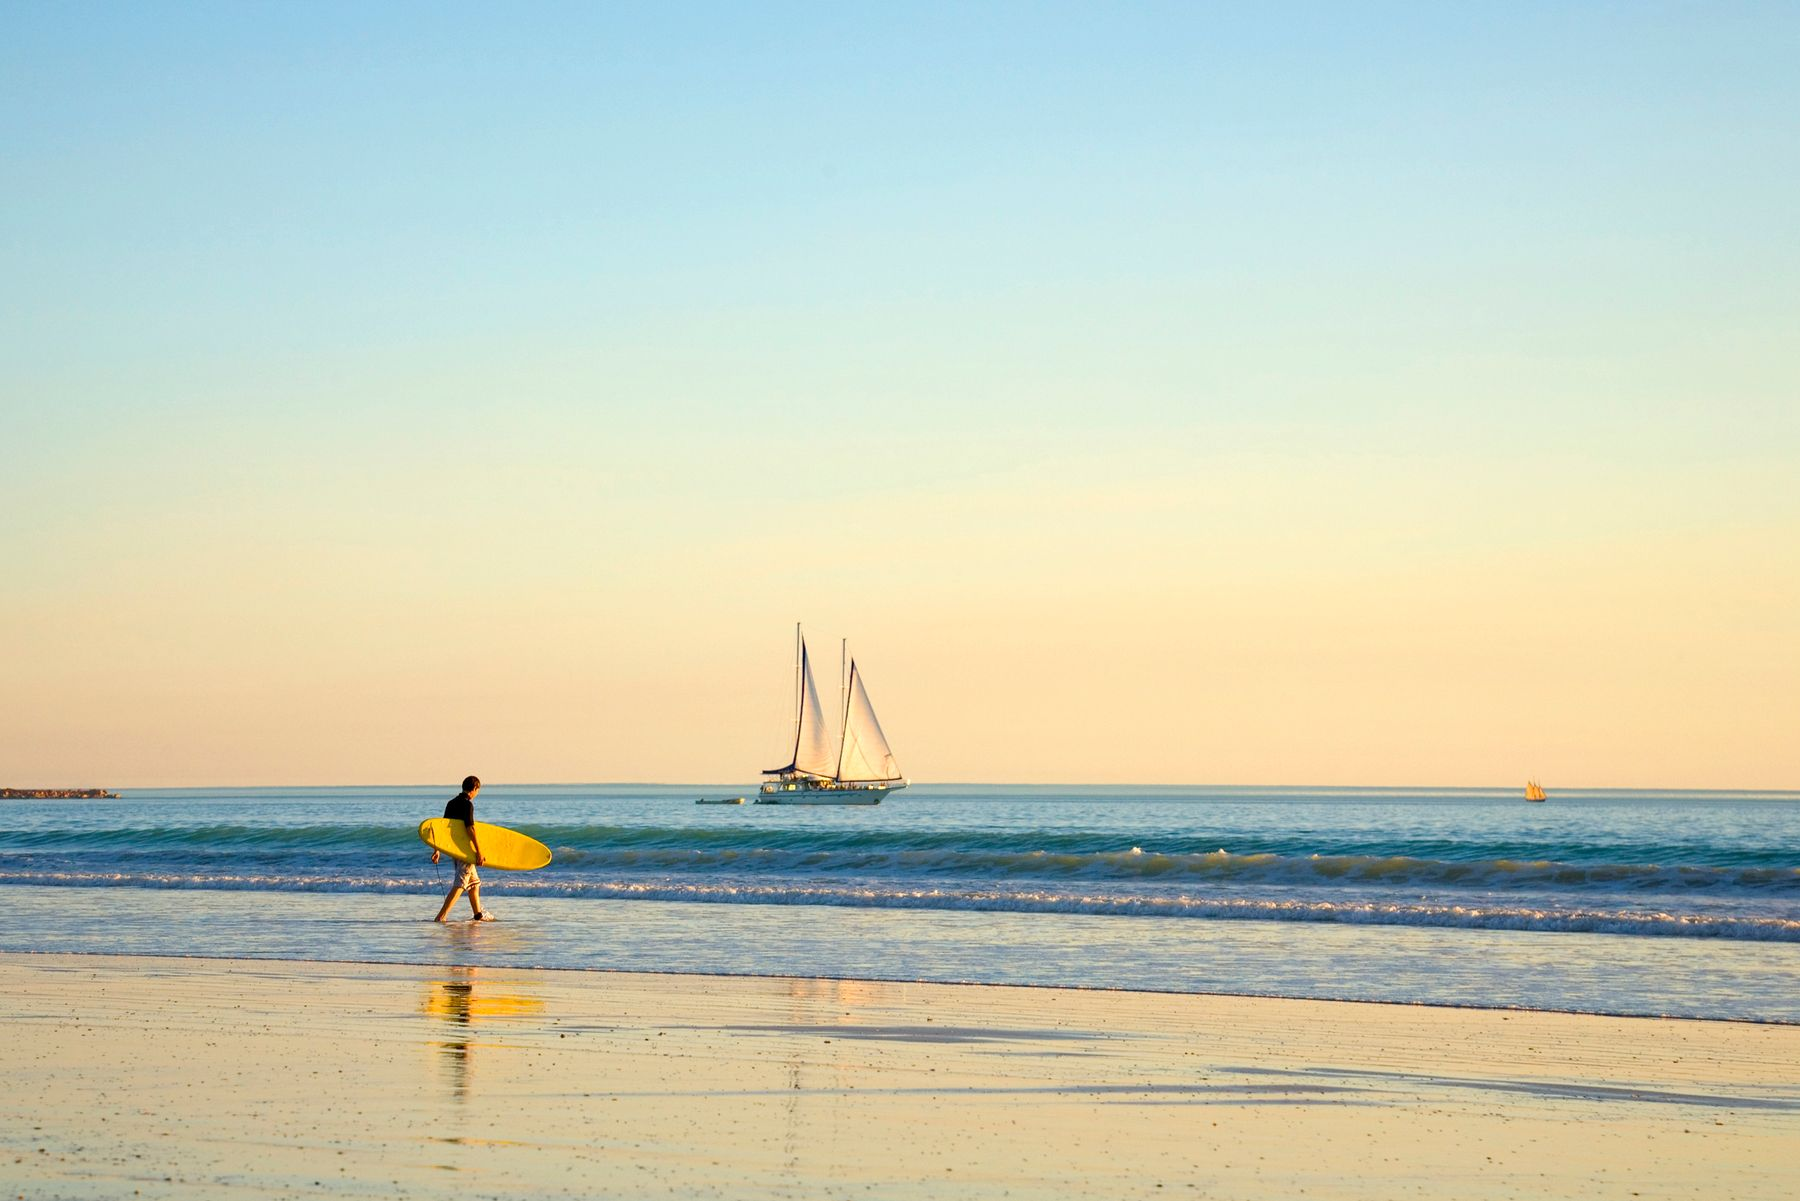 Man on beach with surfboard in Broome